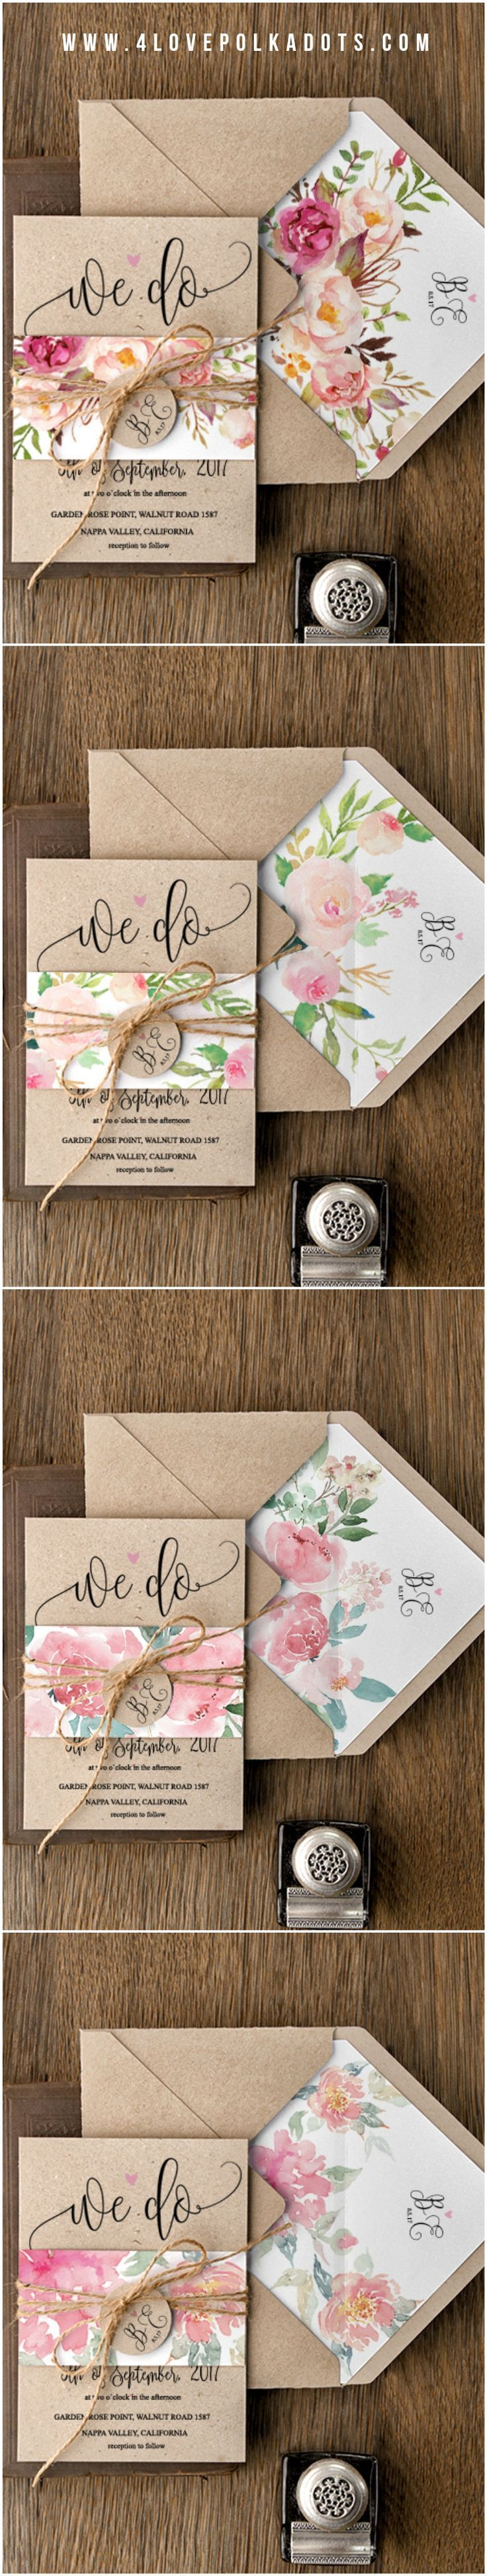 Rustic Wedding Keep this website! Most inexpensive invites I've found! Pin for the color scheme on top card